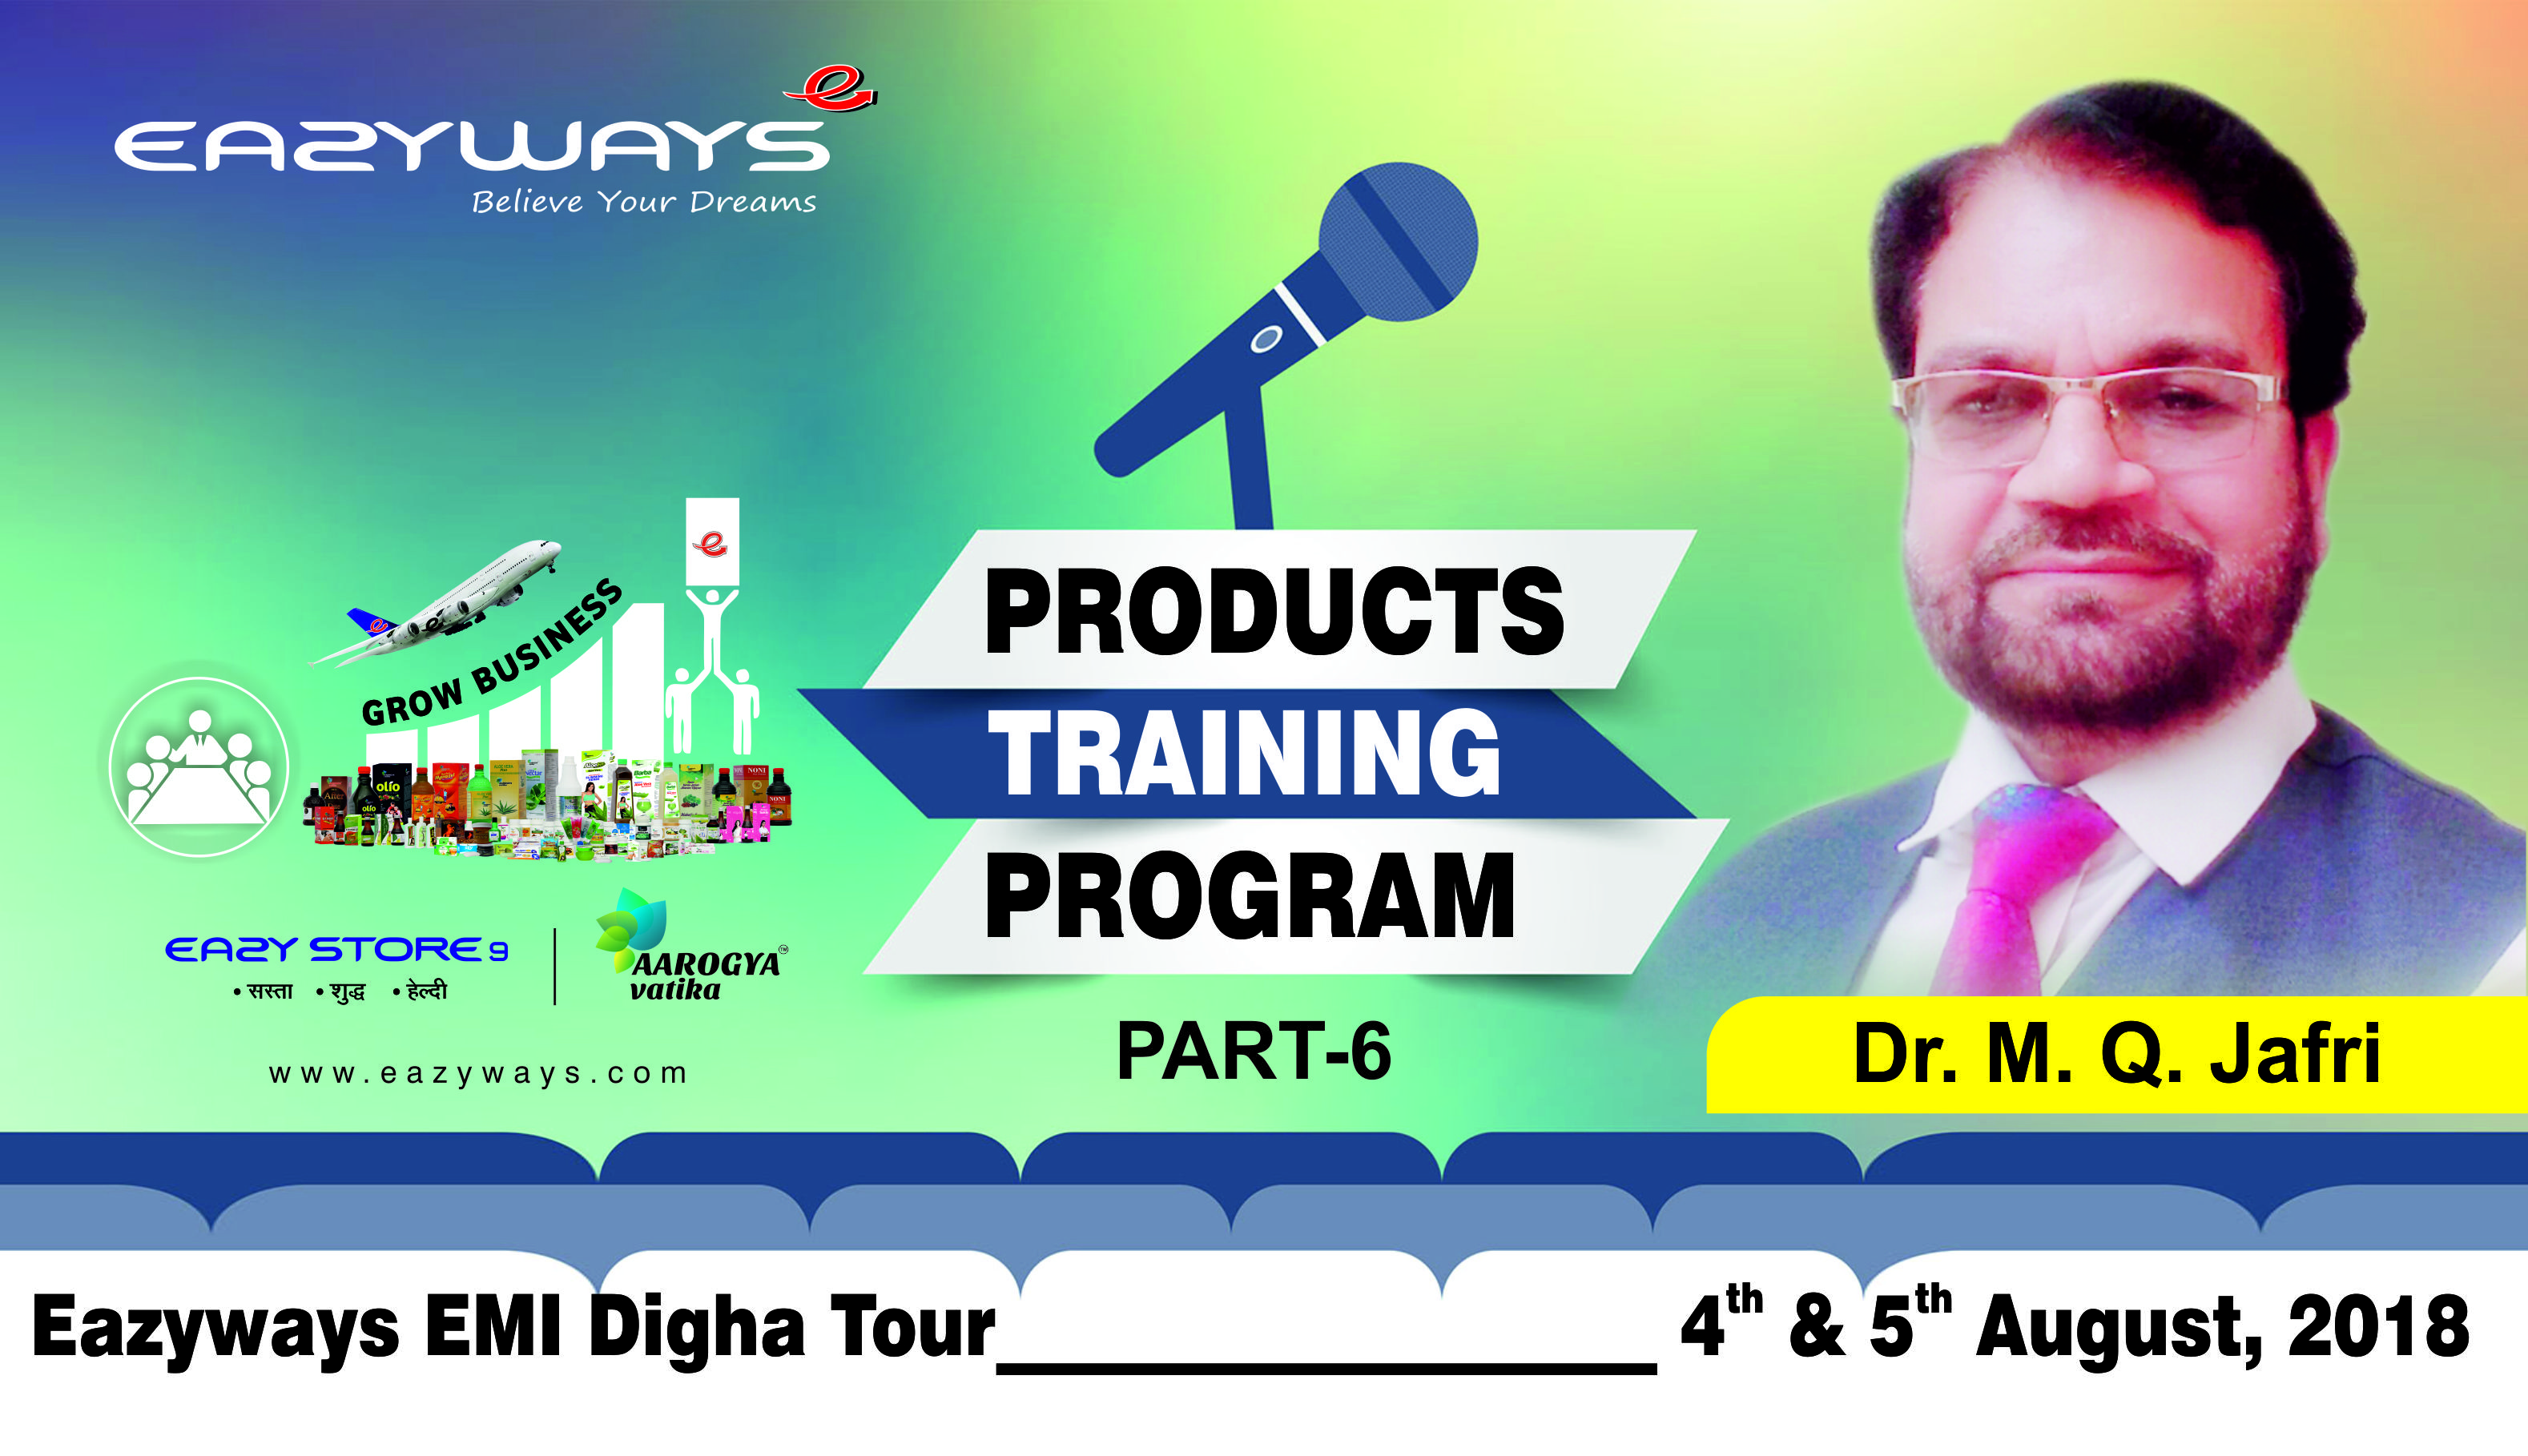 Emi Digha Product training by Dr Jafri Part 6 (4th and 5th August 2018)